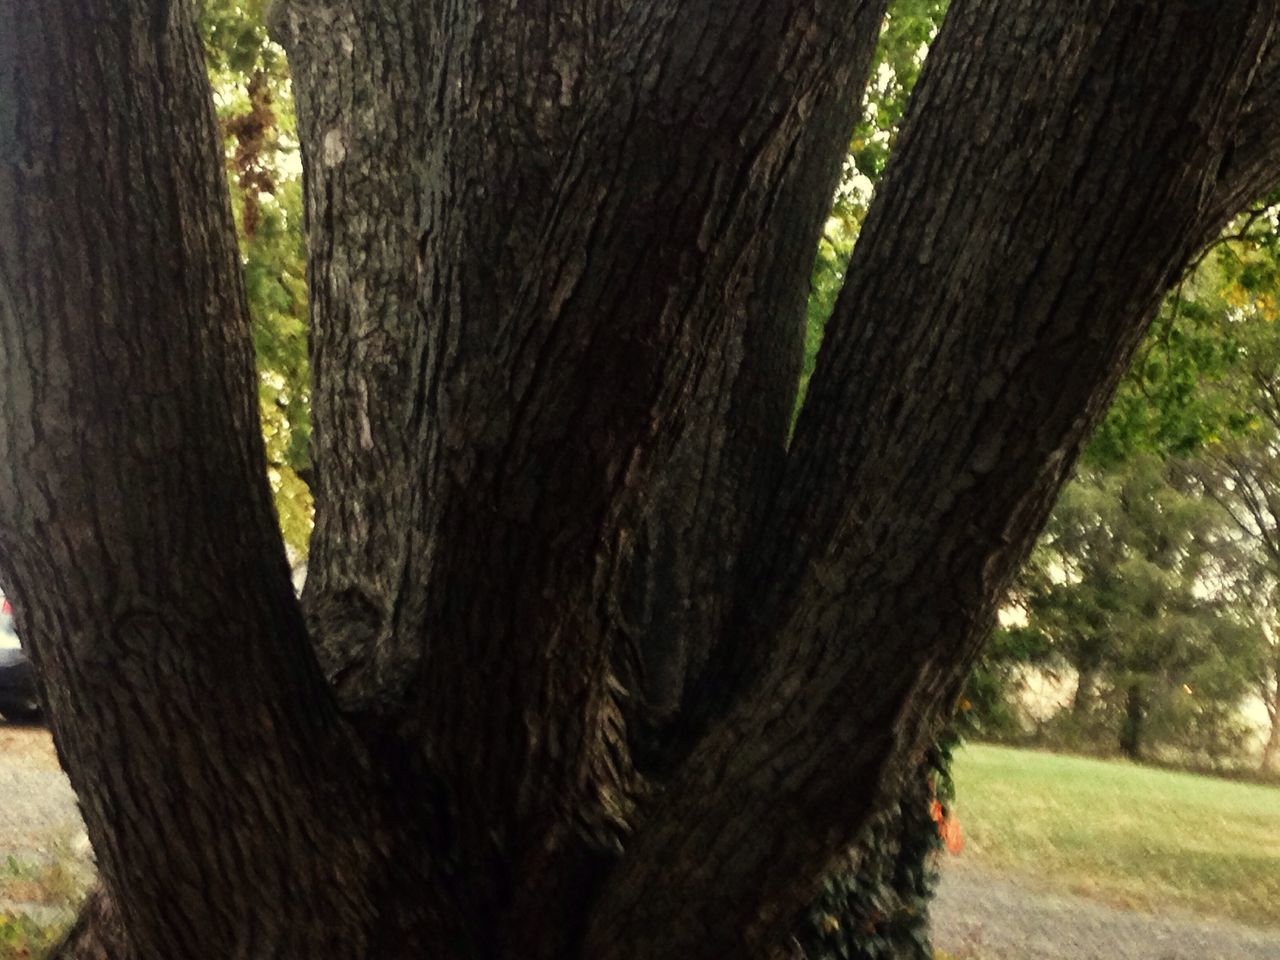 tree trunk, tree, nature, day, no people, outdoors, wood - material, forest, growth, close-up